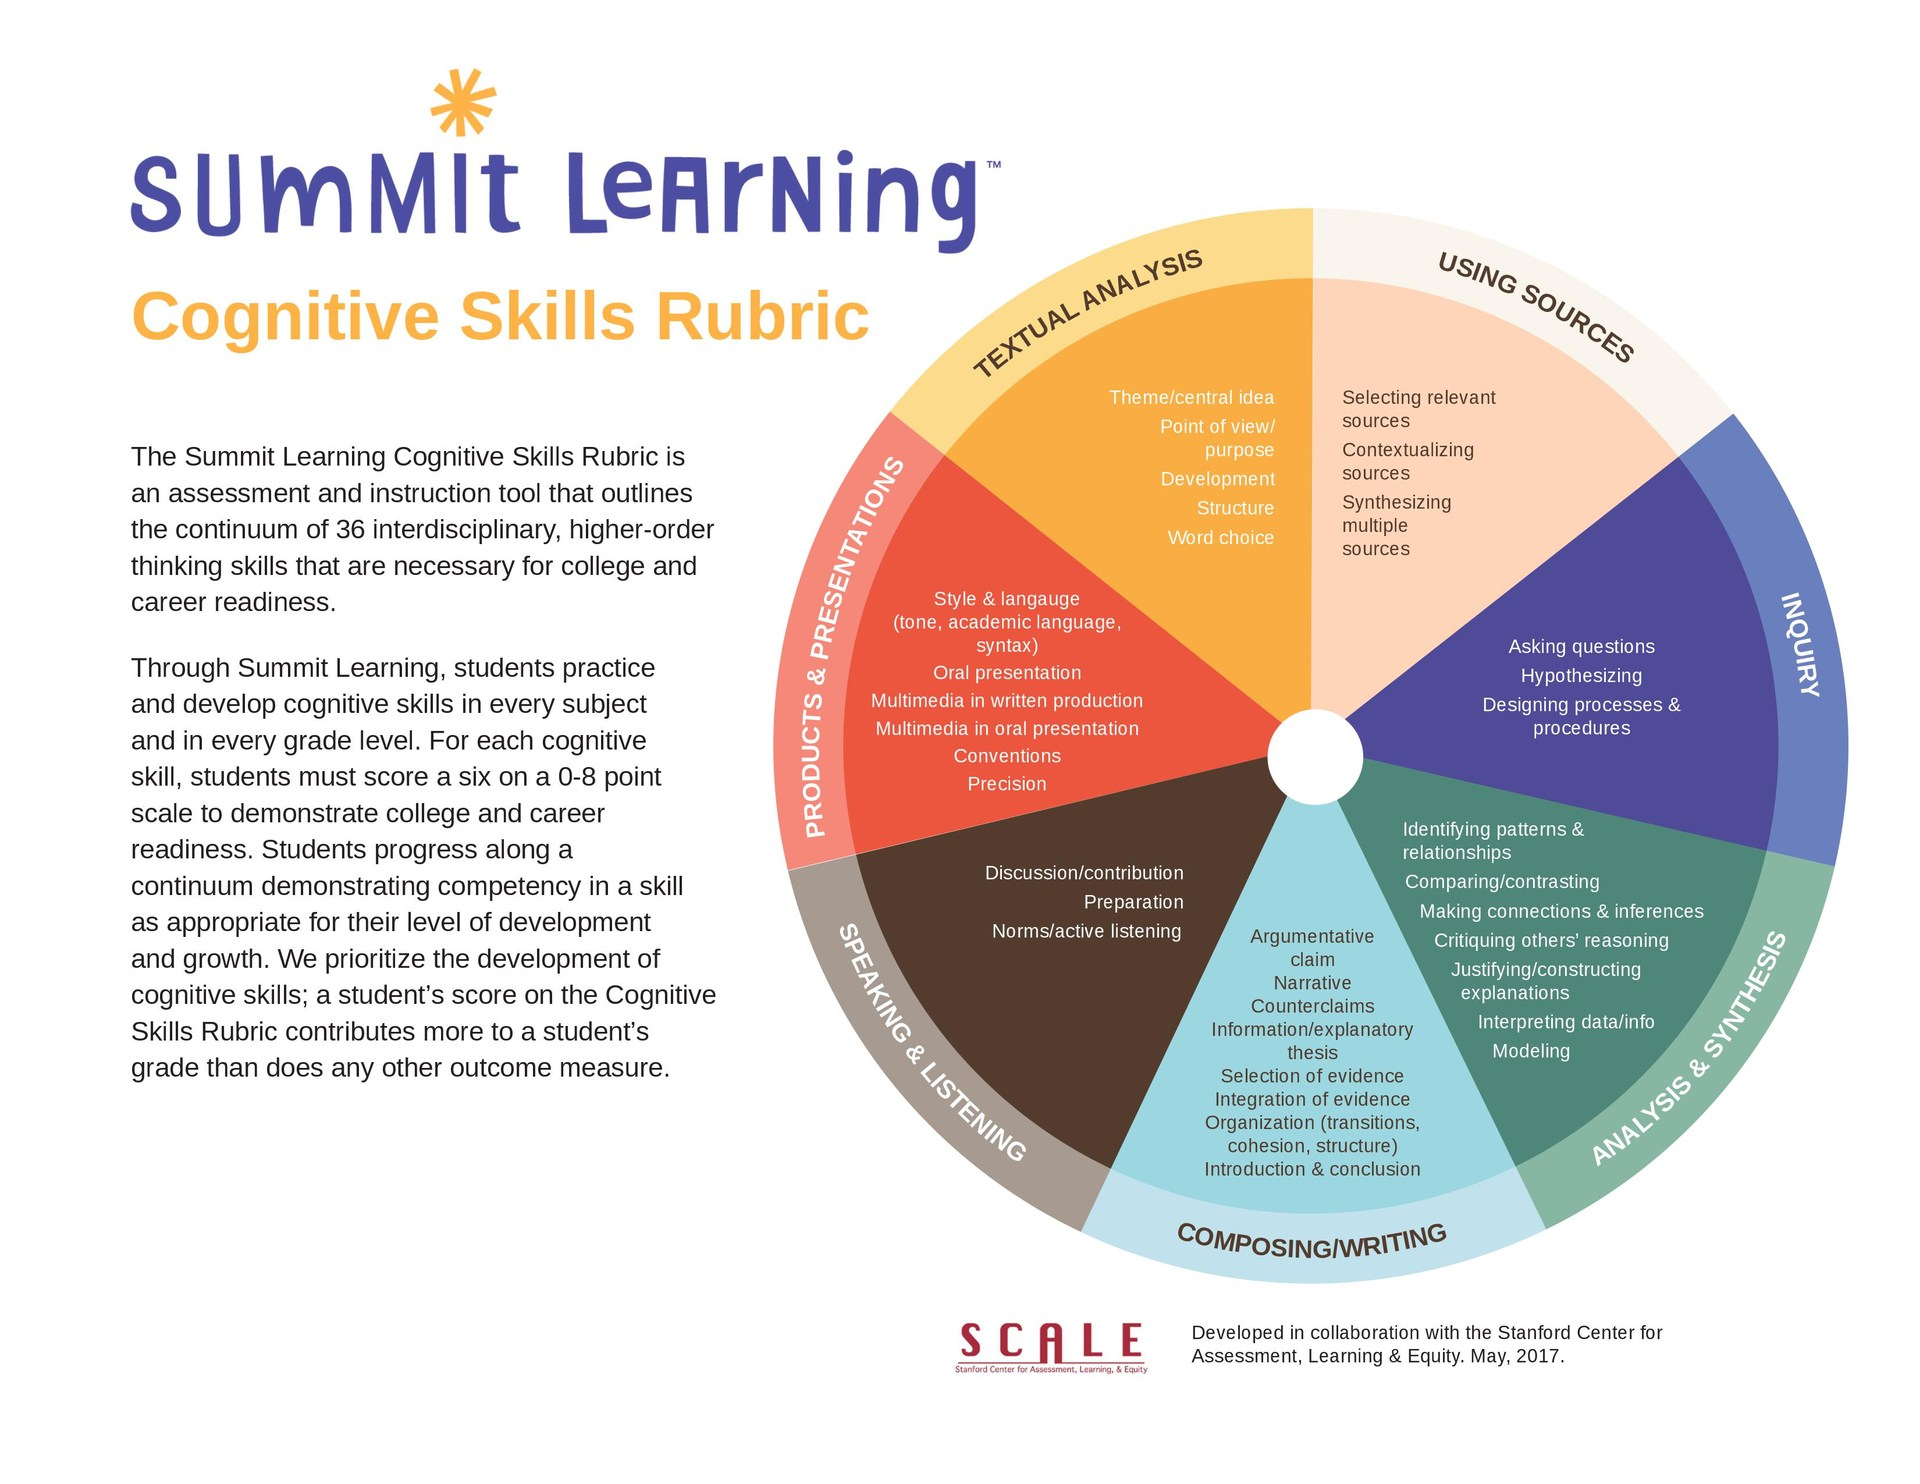 Summit Learning Cognitive Skill Rubric Graphic